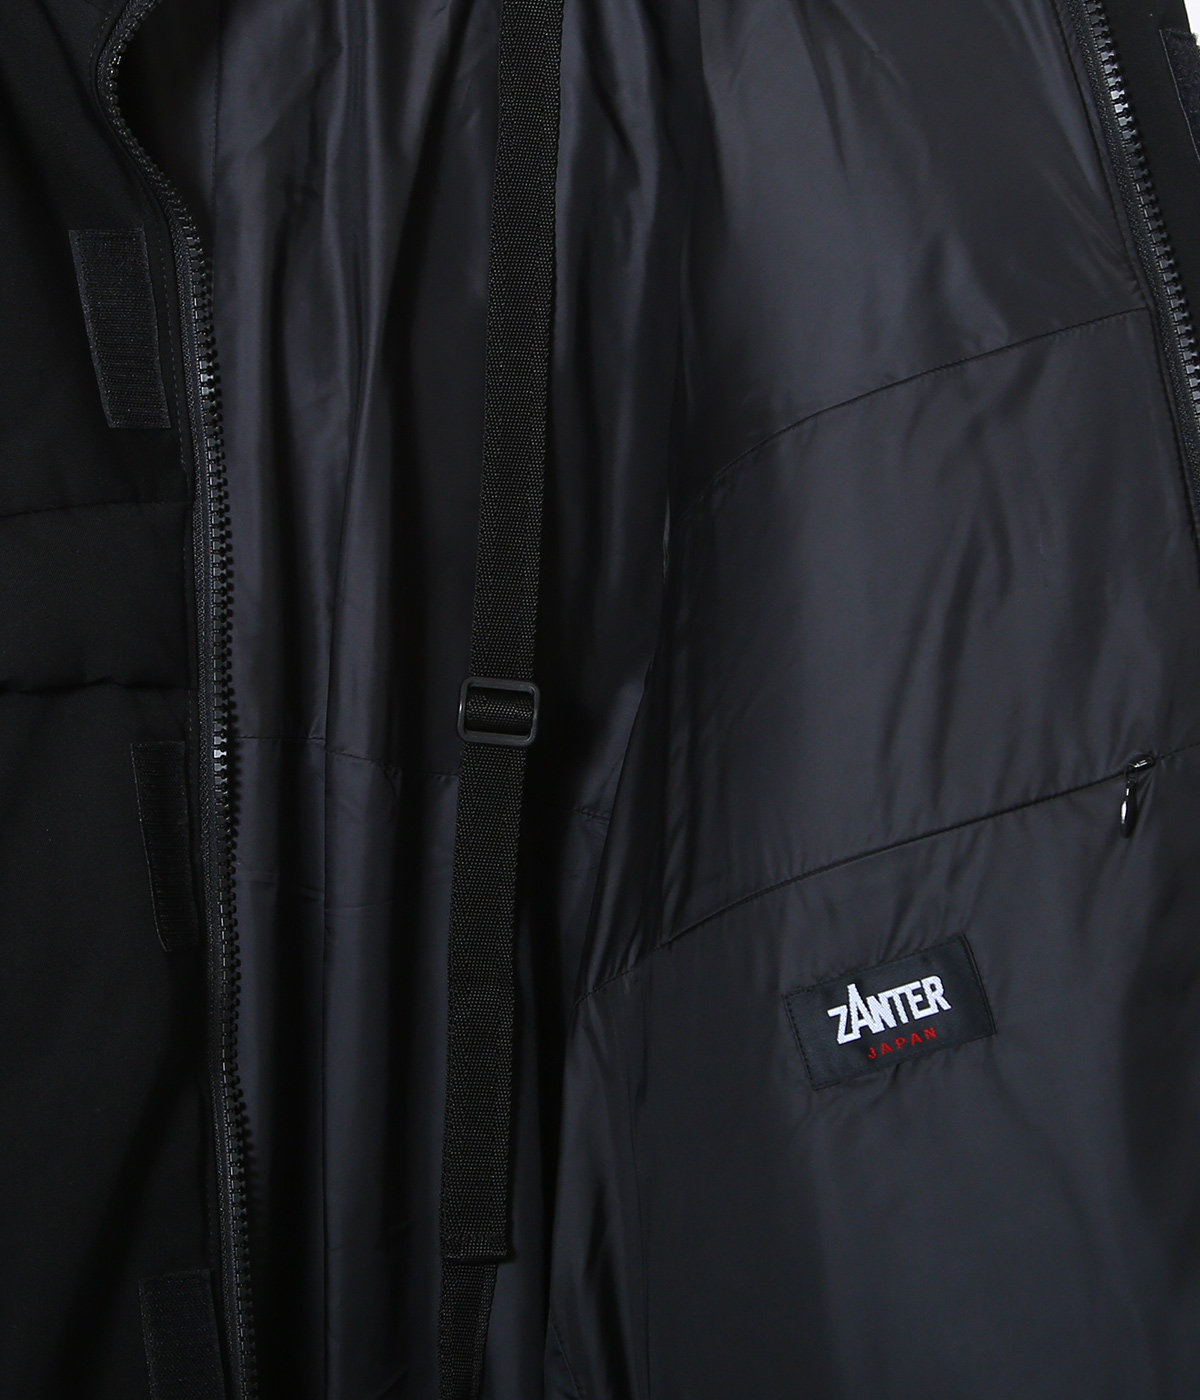 Zanter for Graphpaper Down Jacket